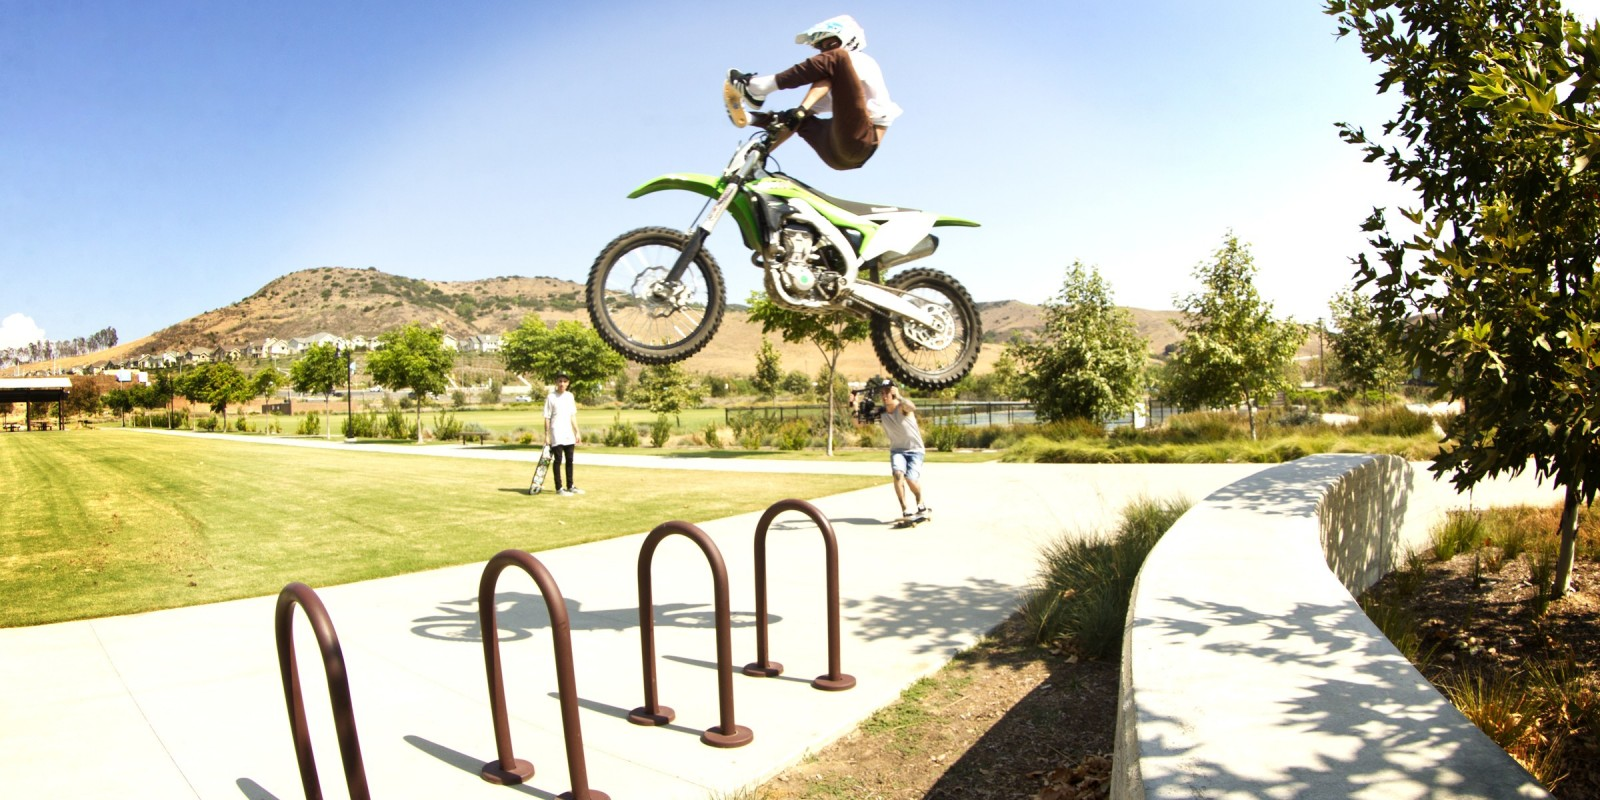 Just another day in paradise for Nyjah Huston